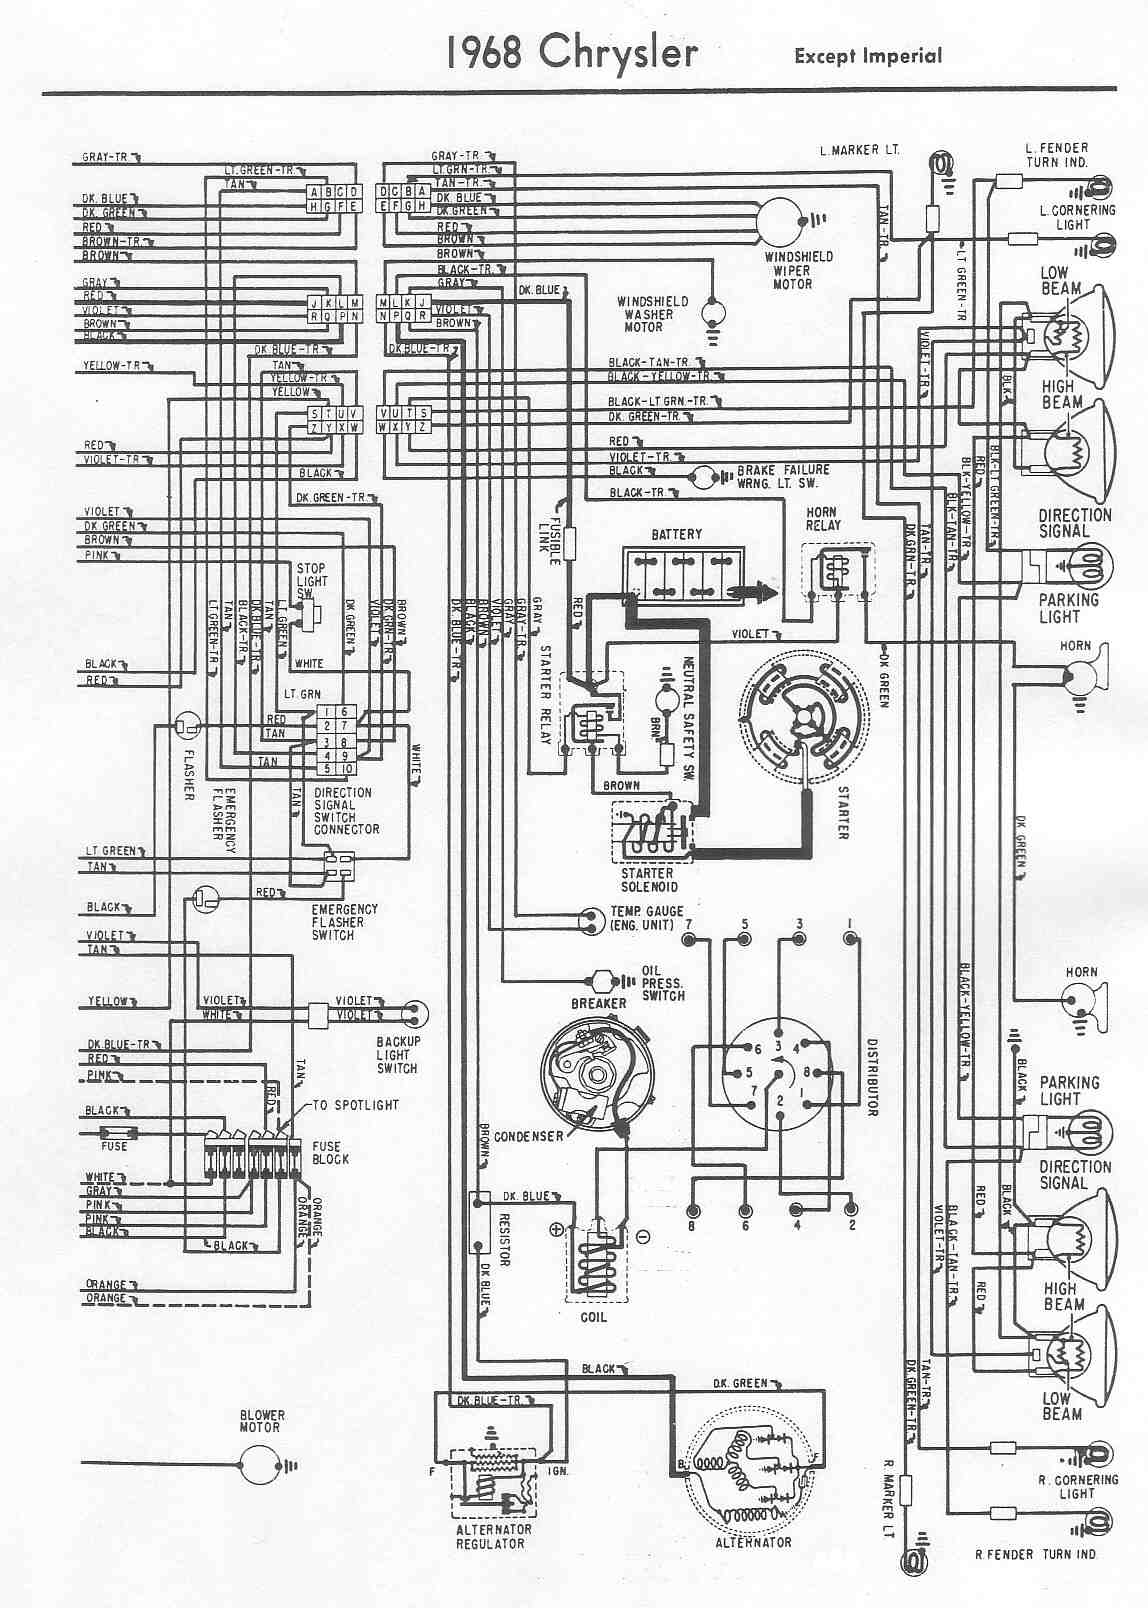 hight resolution of wiring diagram for 1966 plymouth valiant wiring diagram 1964 plymouth valiant 1965 plymouth barracuda wiring diagram